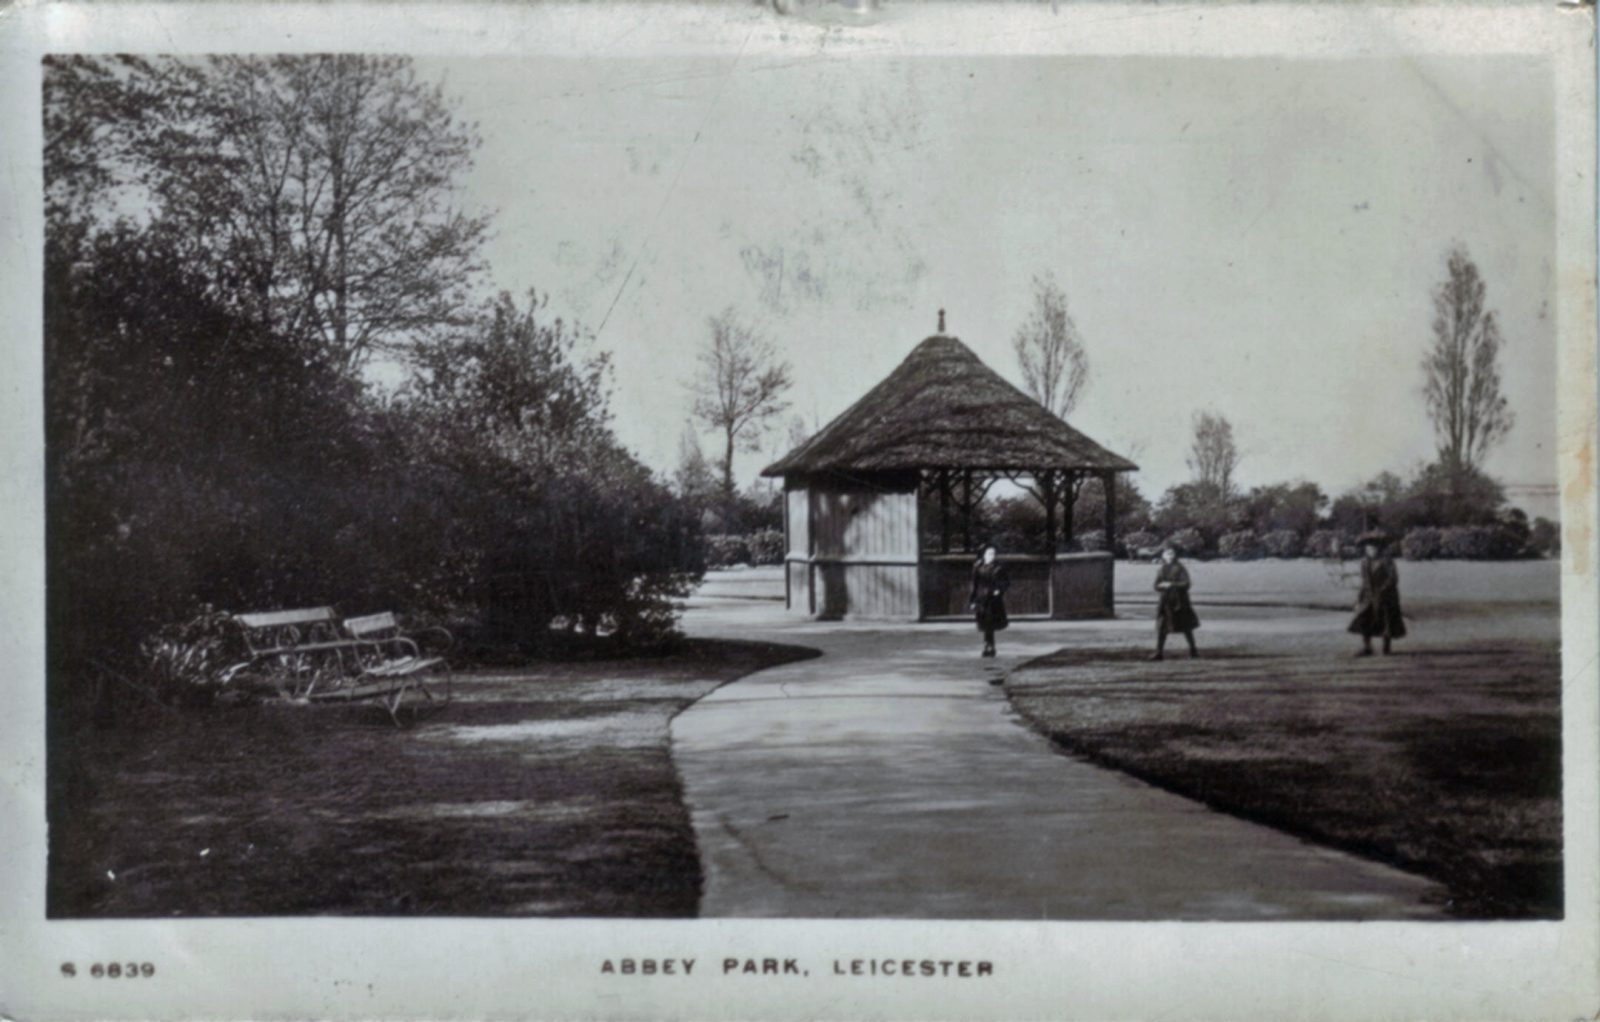 Abbey Park, Leicester. 1901-1920: Path and gazebo. Franked 1911 (File:1048)